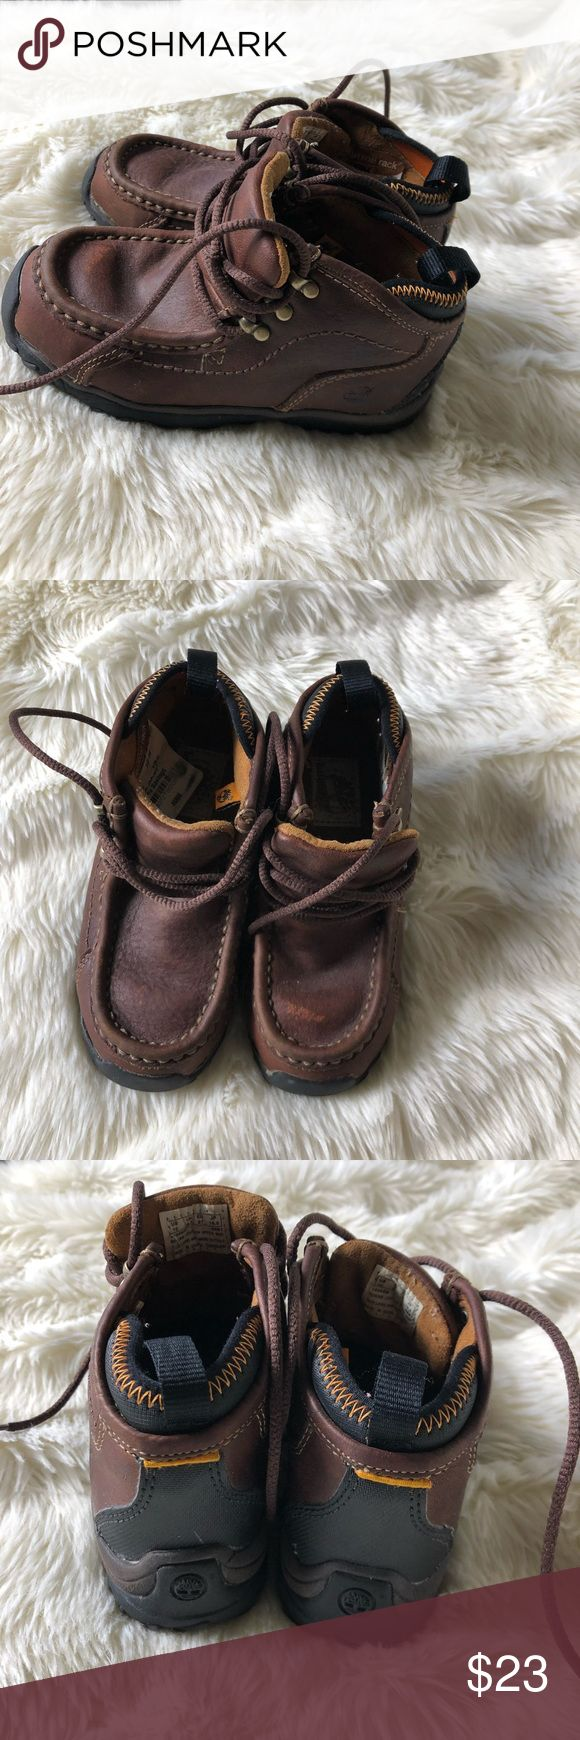 Moc Toe Boot Lace Up Leather Toddler Boys' Timberland Moc Toe Boot Lace Up Leather Toddler Boys' Size 10 Brown 46866M  Great Condition: Minimal scratches from wear. See Pics. Timberland Shoes Boots